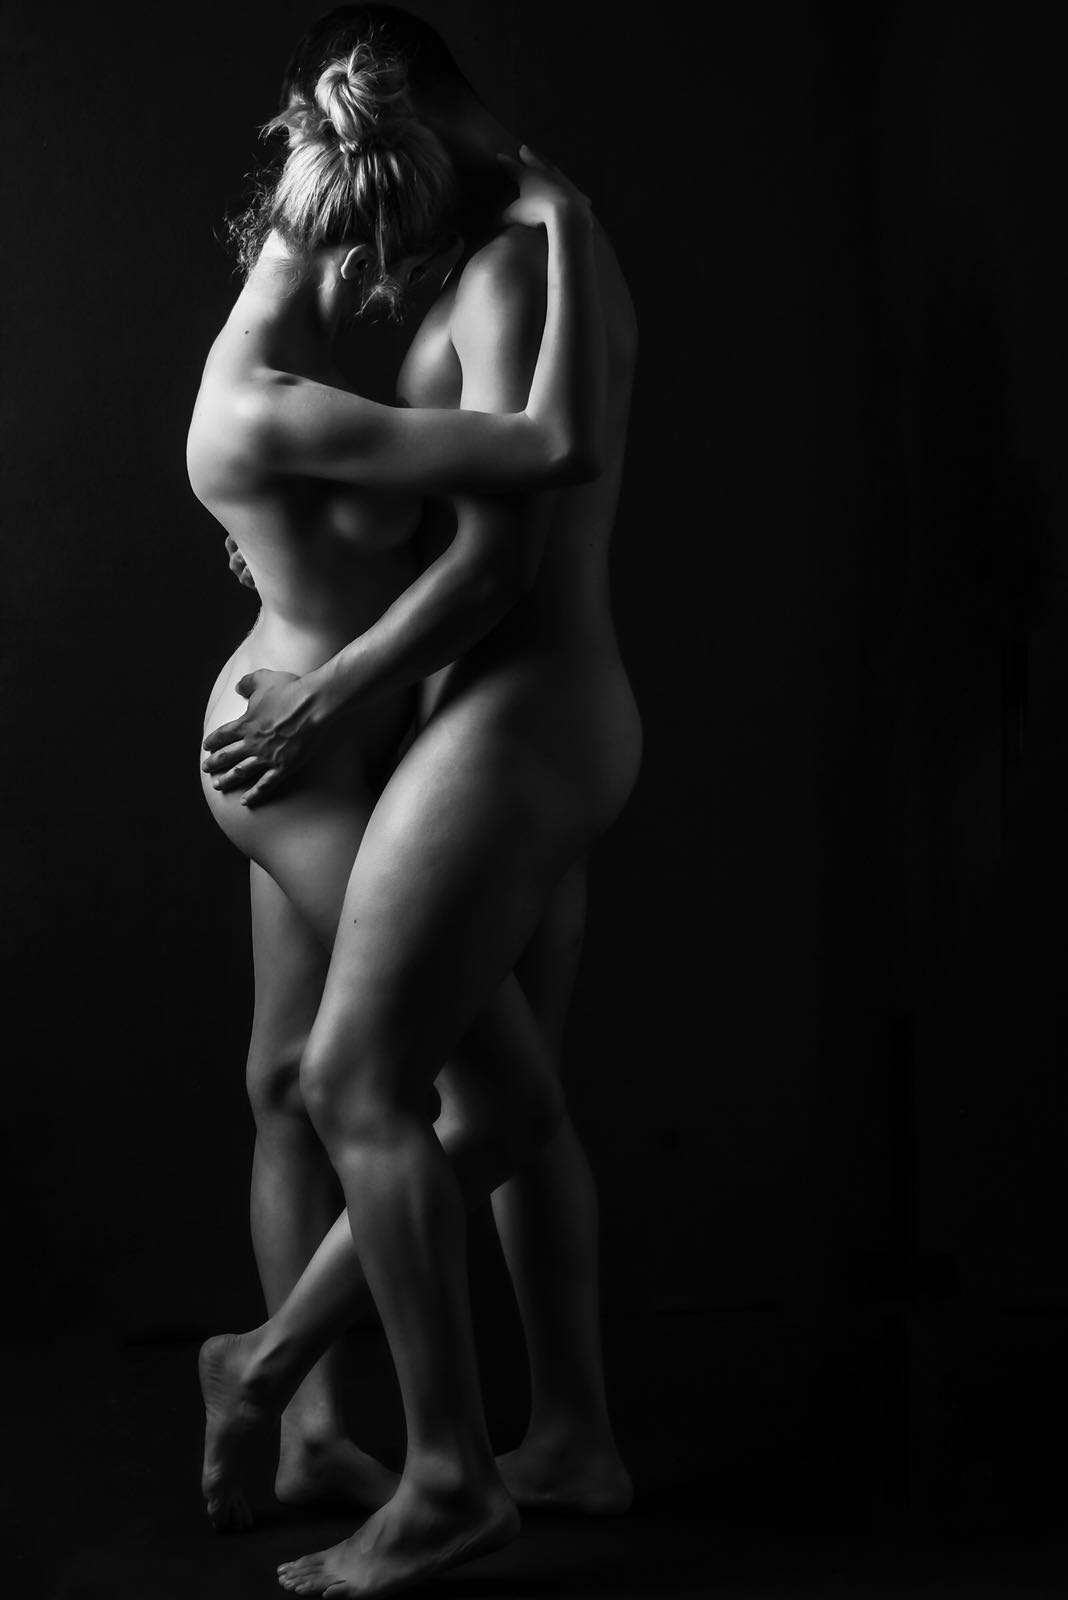 Intimate Nude Couple Photography - Orlando, Florida